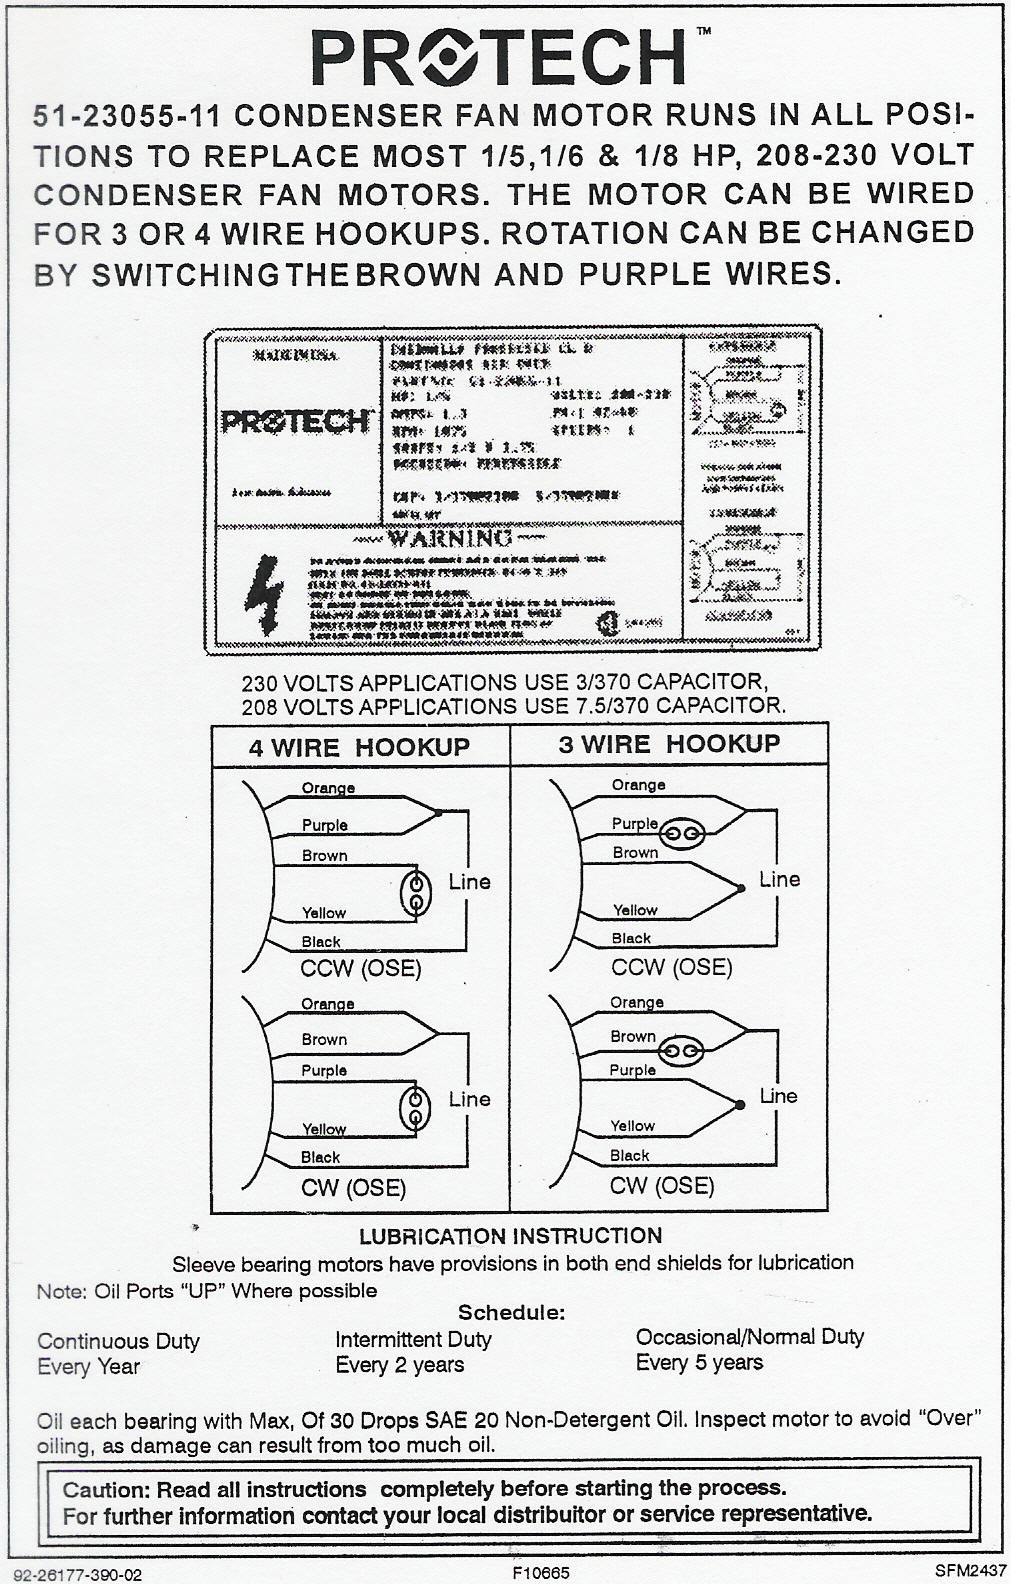 Ac-Motor-Wiring-Diagram2  Phase Electric Motor Wiring Diagram Pdf on 3 phase electrical panel, 3 phase ac generator diagram, 3 phase ac motor wiring, 3 phase electric generators, 3 phase motor parts diagram, single phase induction motor diagram, electrical phase diagram, 3 phase electric motor specifications, 3 phase ac generator animation, 3 phase motor winding diagrams, electrical motor diagram, 3 phase motor control circuit, 3 phase electrical wiring, 3 phase starter diagram, motor control diagram, electric motor starter diagram, 3 phase breaker box diagram, single phase electric motor diagram, 3 phase electrical schematic symbols, 3 phase motor electrical schematics,